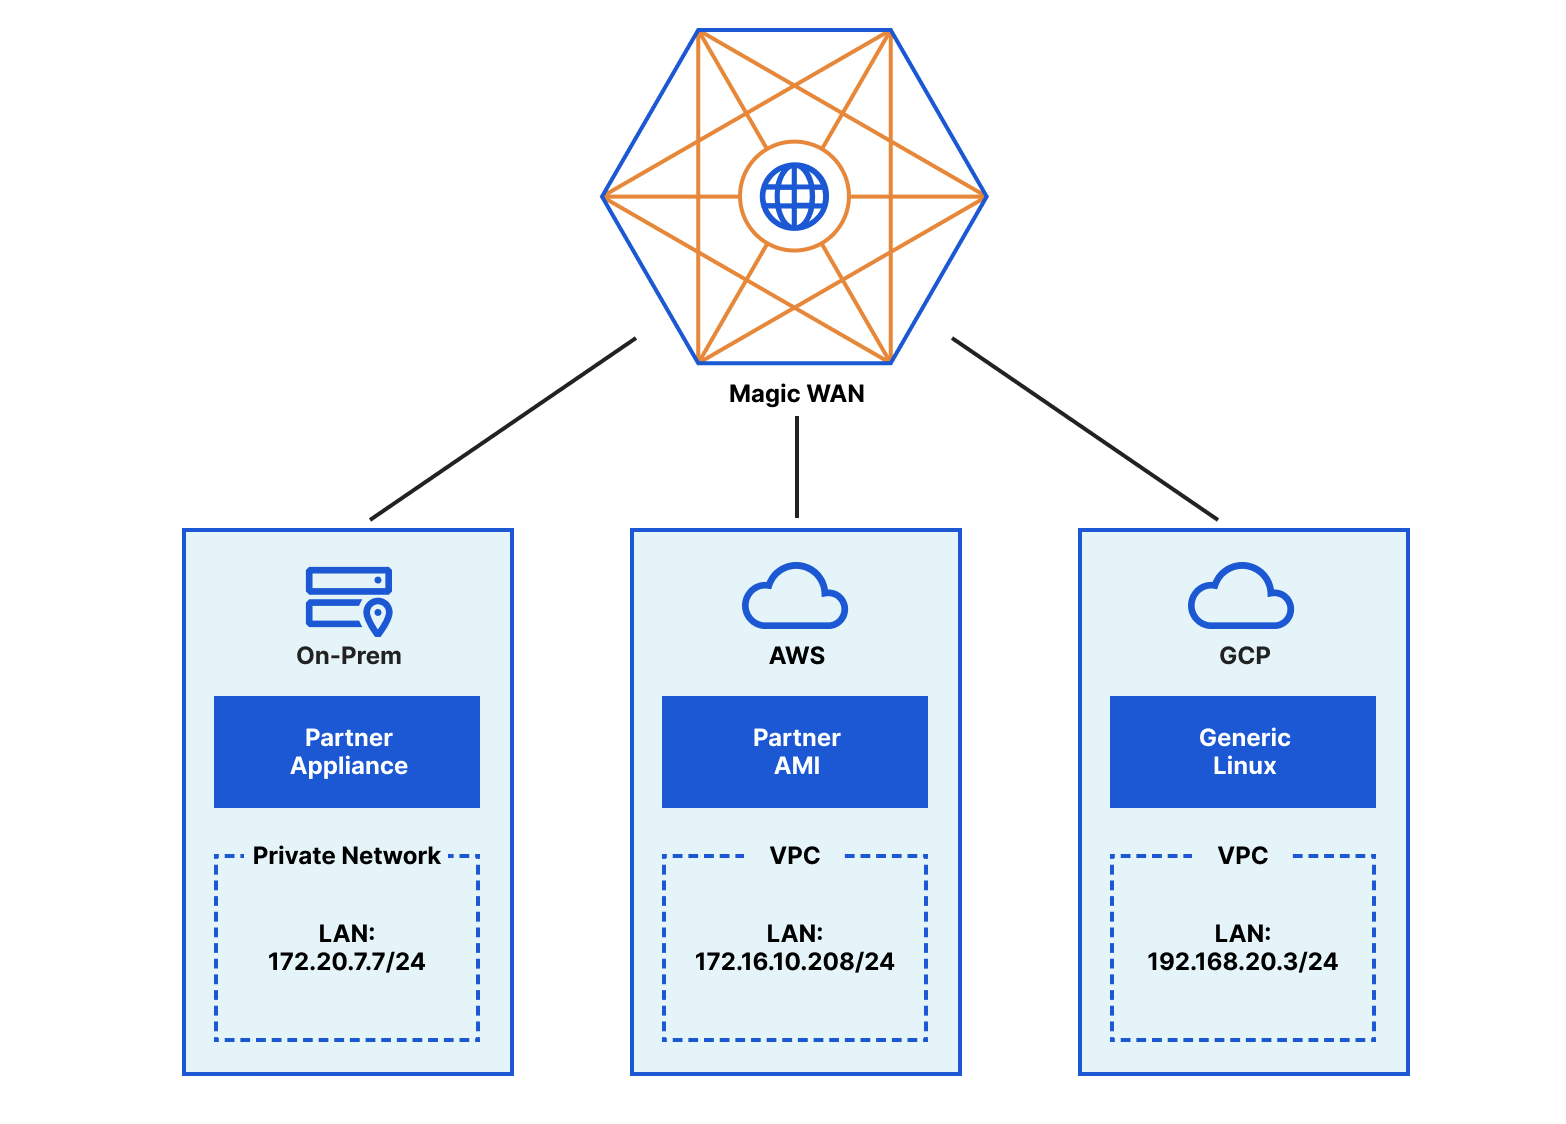 3 private networks, using a mixture of a partner hardware appliance, a partner virtual AMI, and a generic Linux router connected to Cloudflare Magic WAN via the nearest Cloudflare data center.